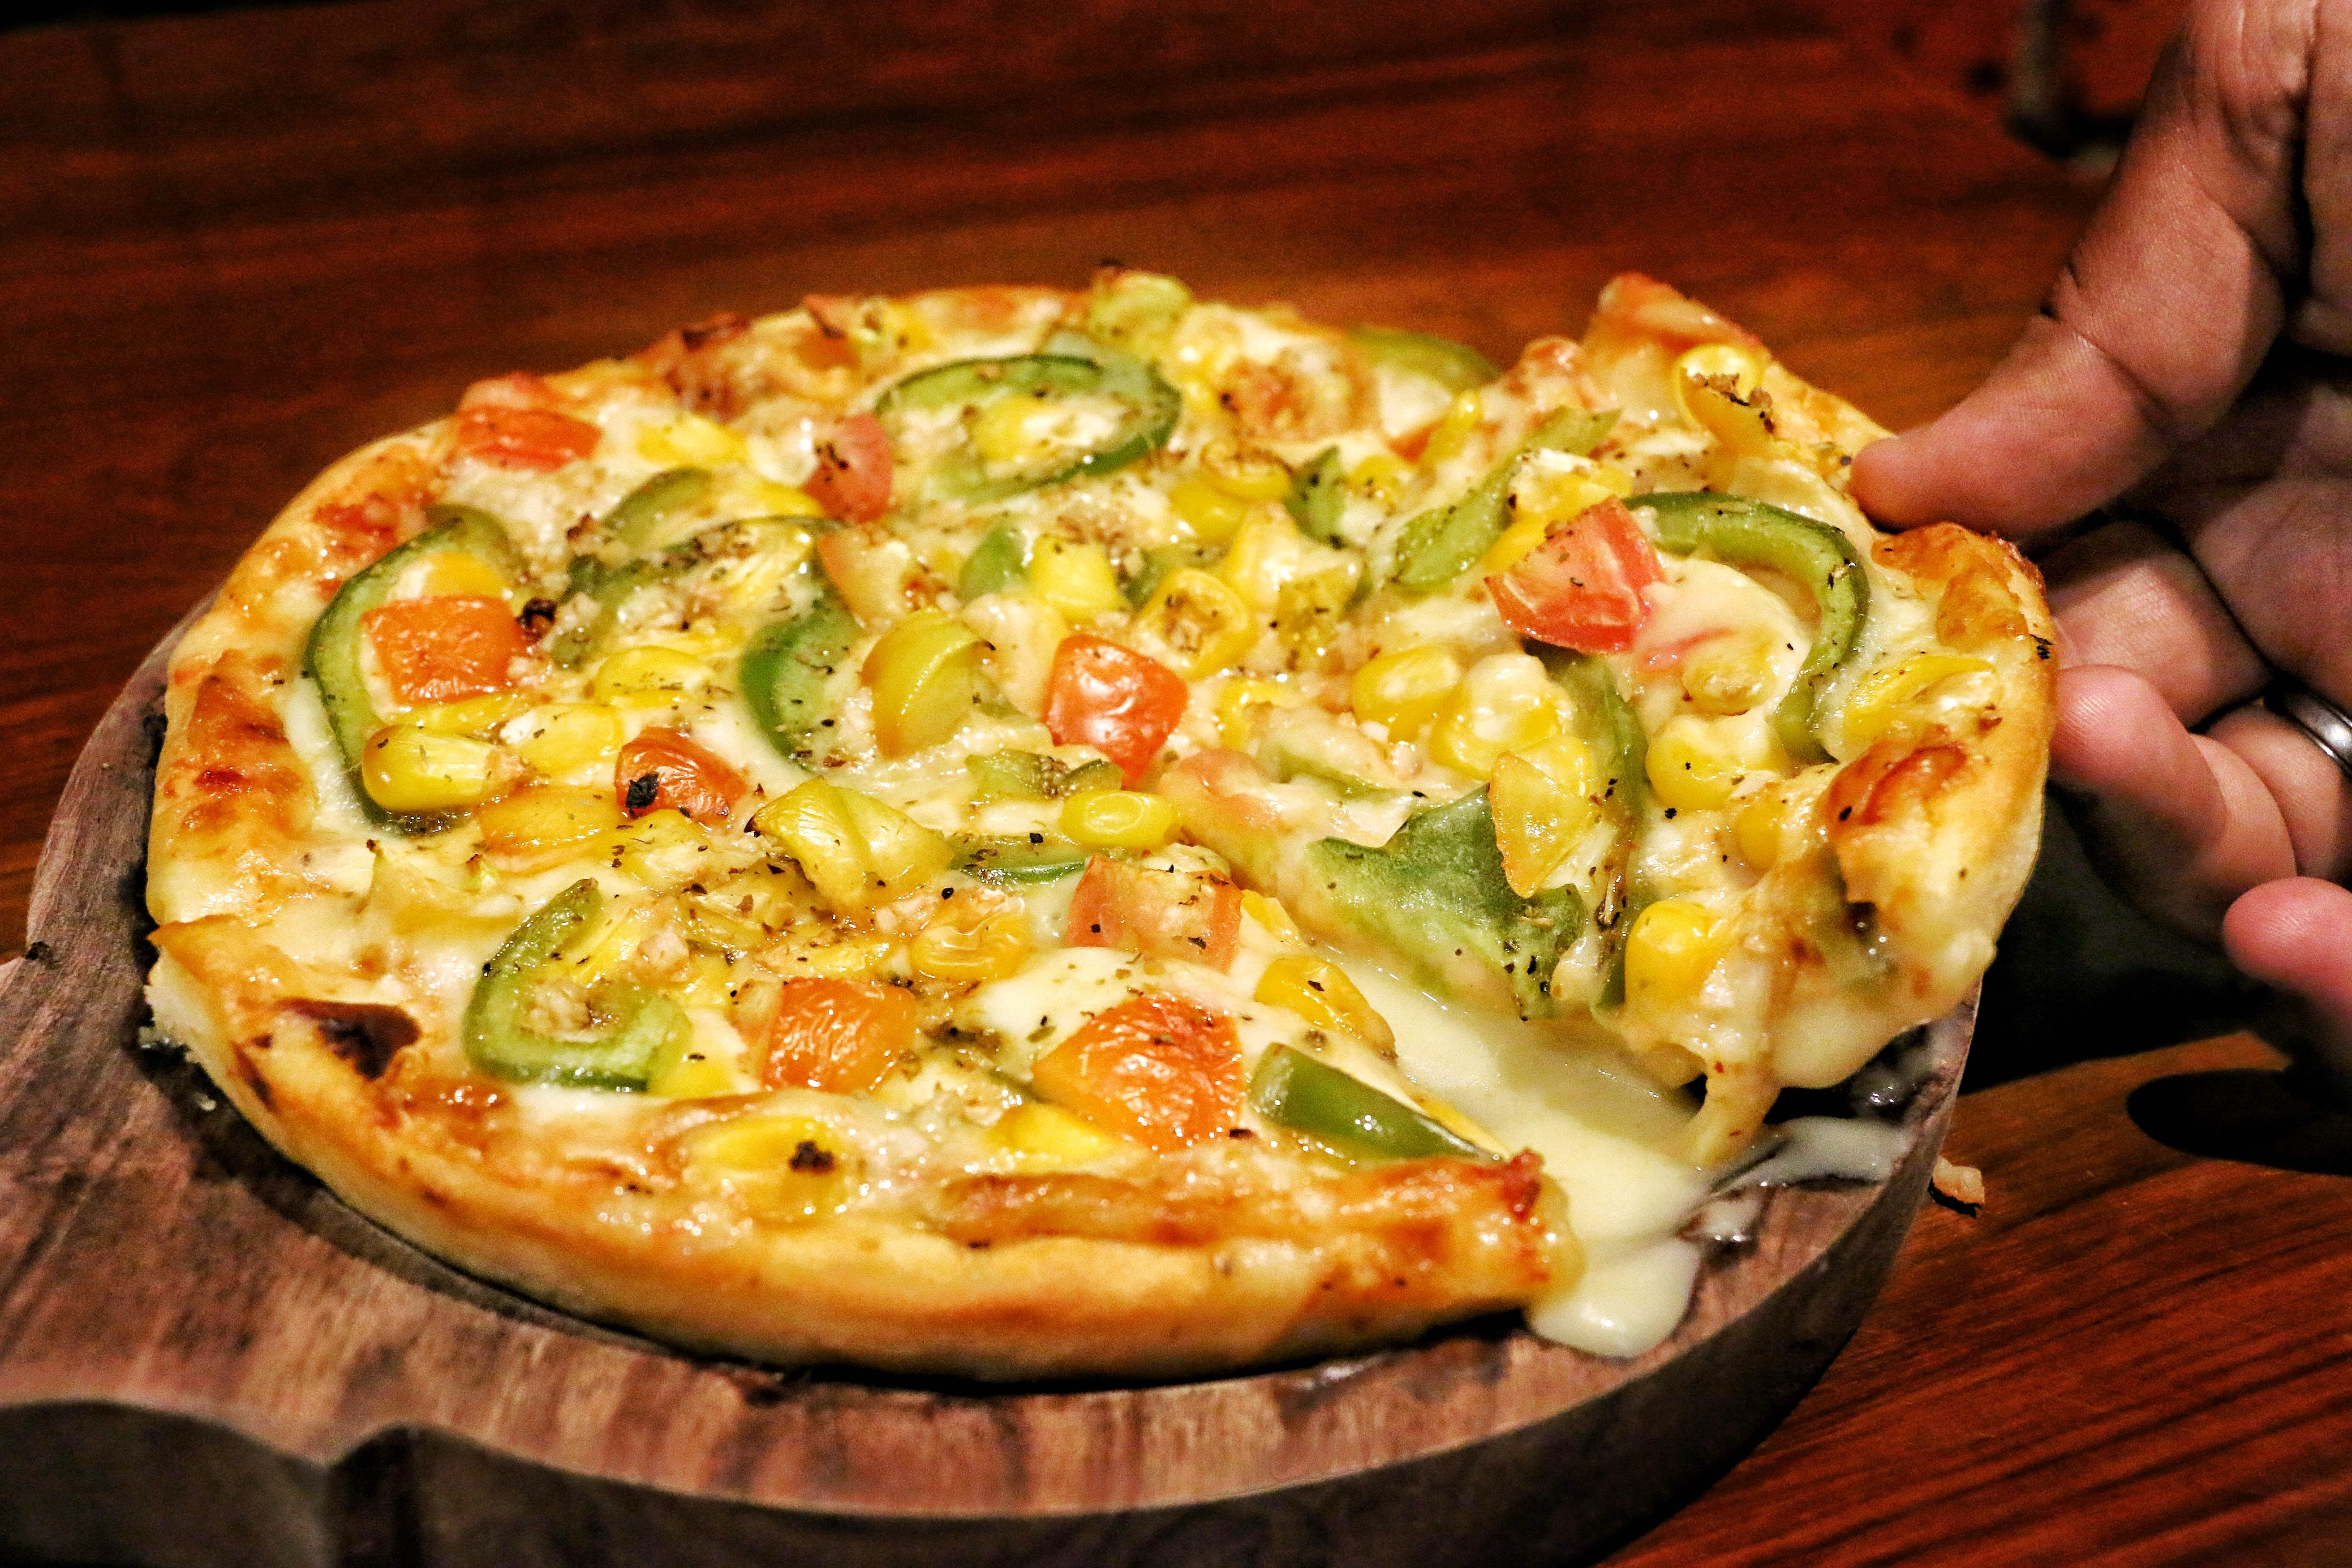 Dish,Food,Cuisine,Pizza,California-style pizza,Ingredient,Pizza cheese,Tarte flambée,Flatbread,Italian food